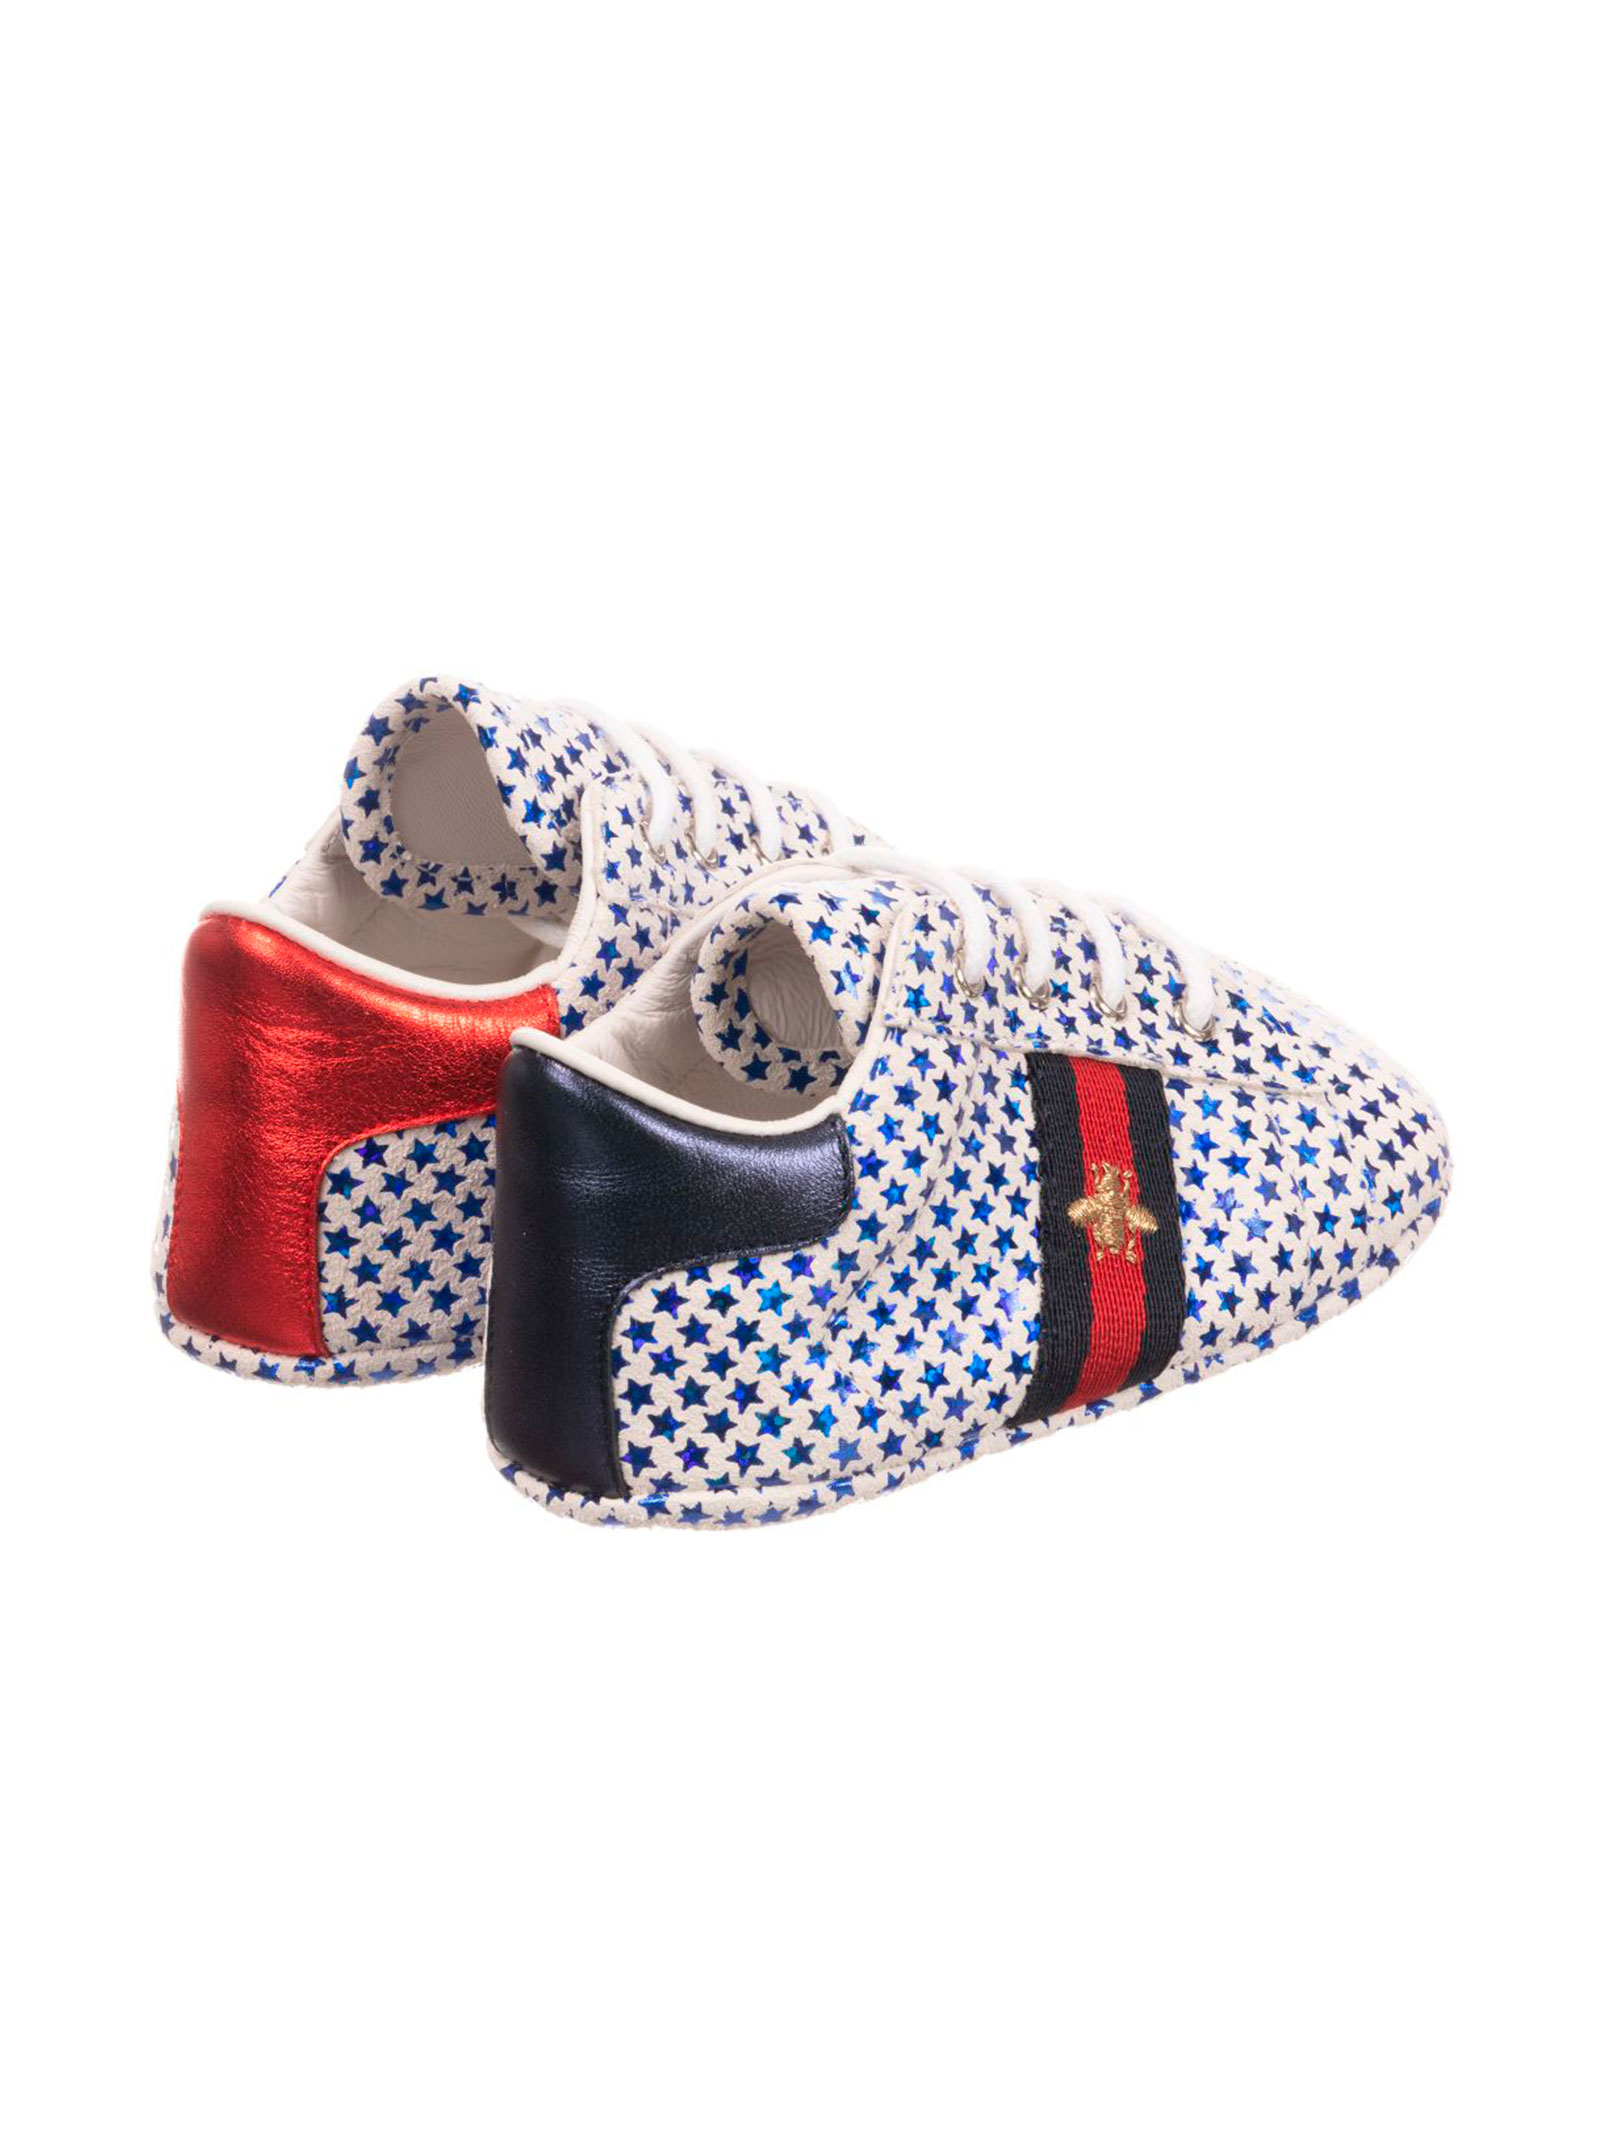 46130527fc1d1 GUCCI KIDS BABY LACE-UP SHOES - GUCCI KIDS - Mancini Junior